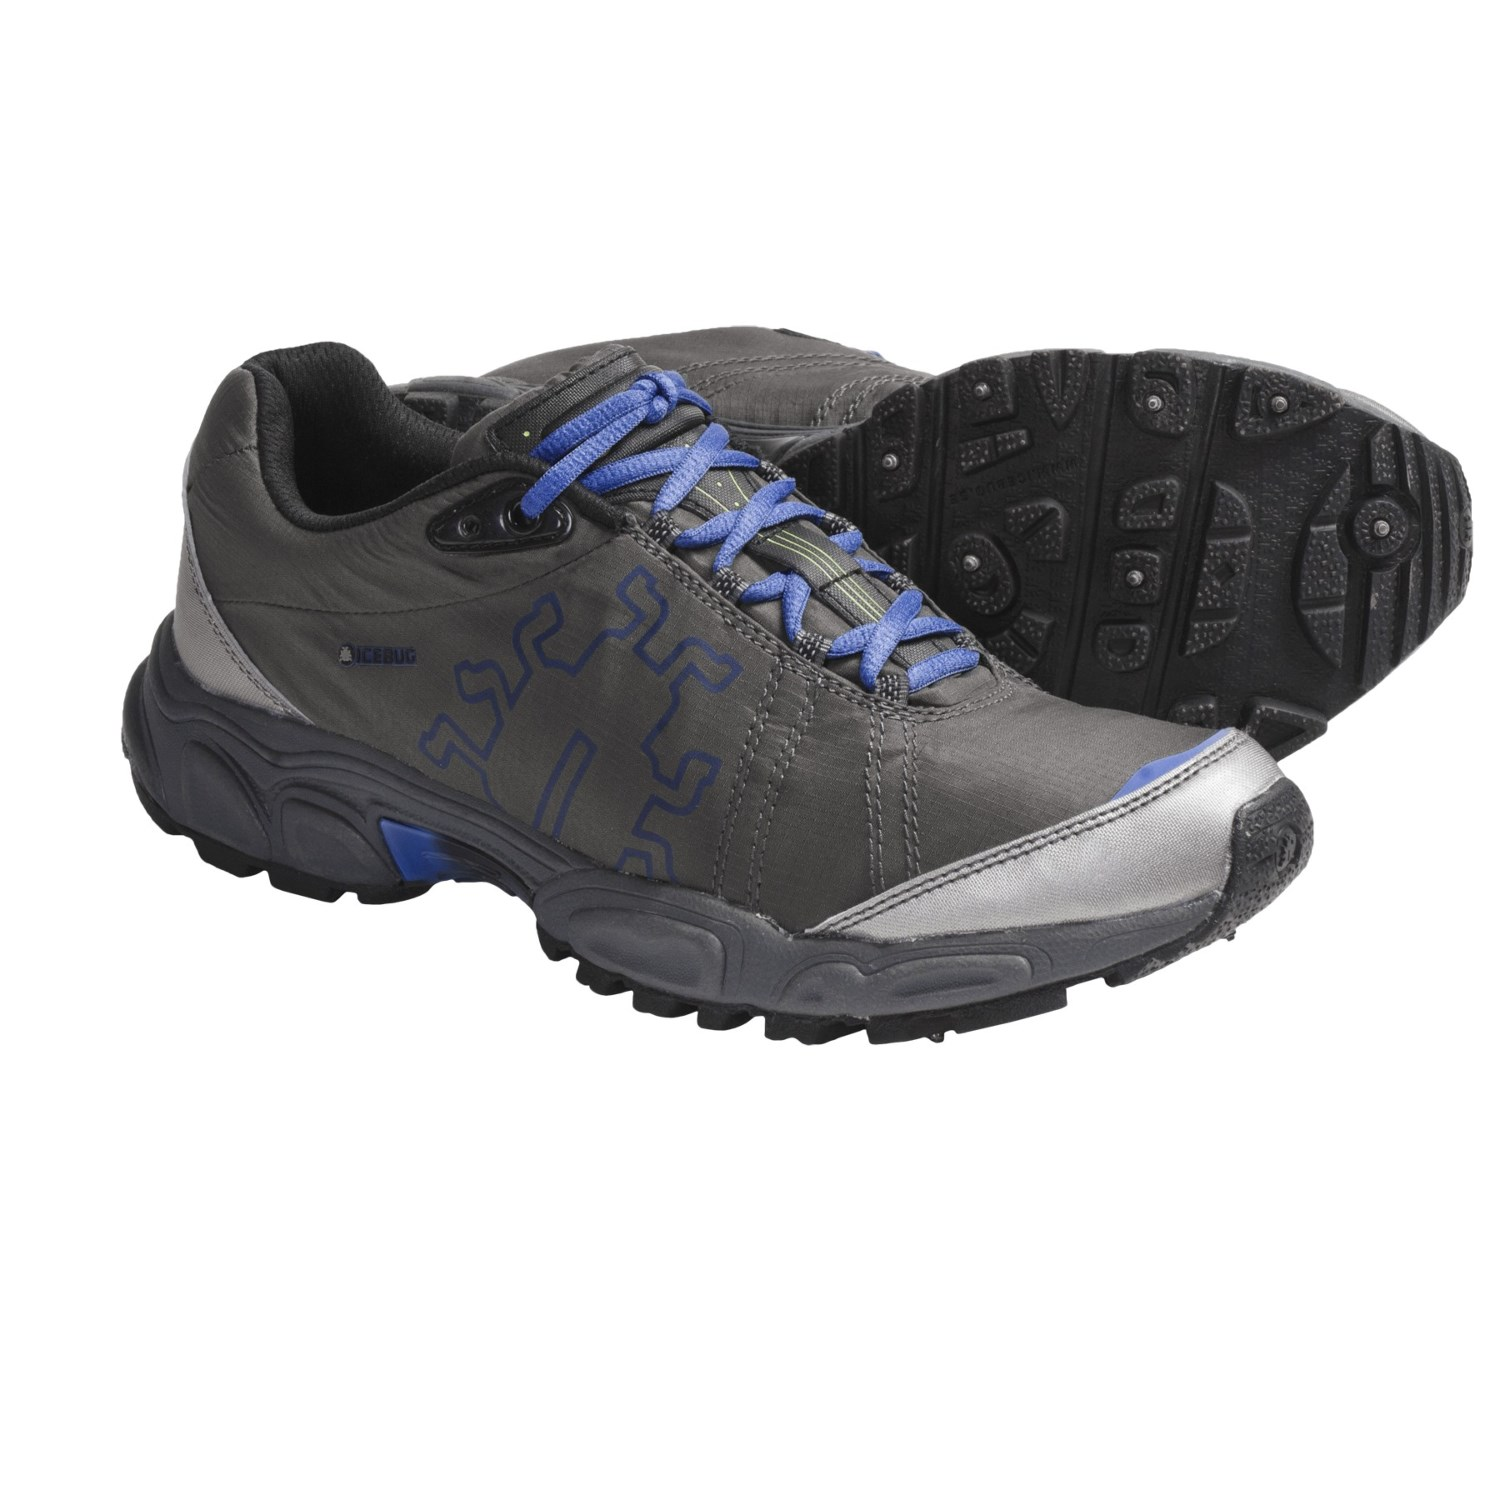 Icebug Winter Running Shoes